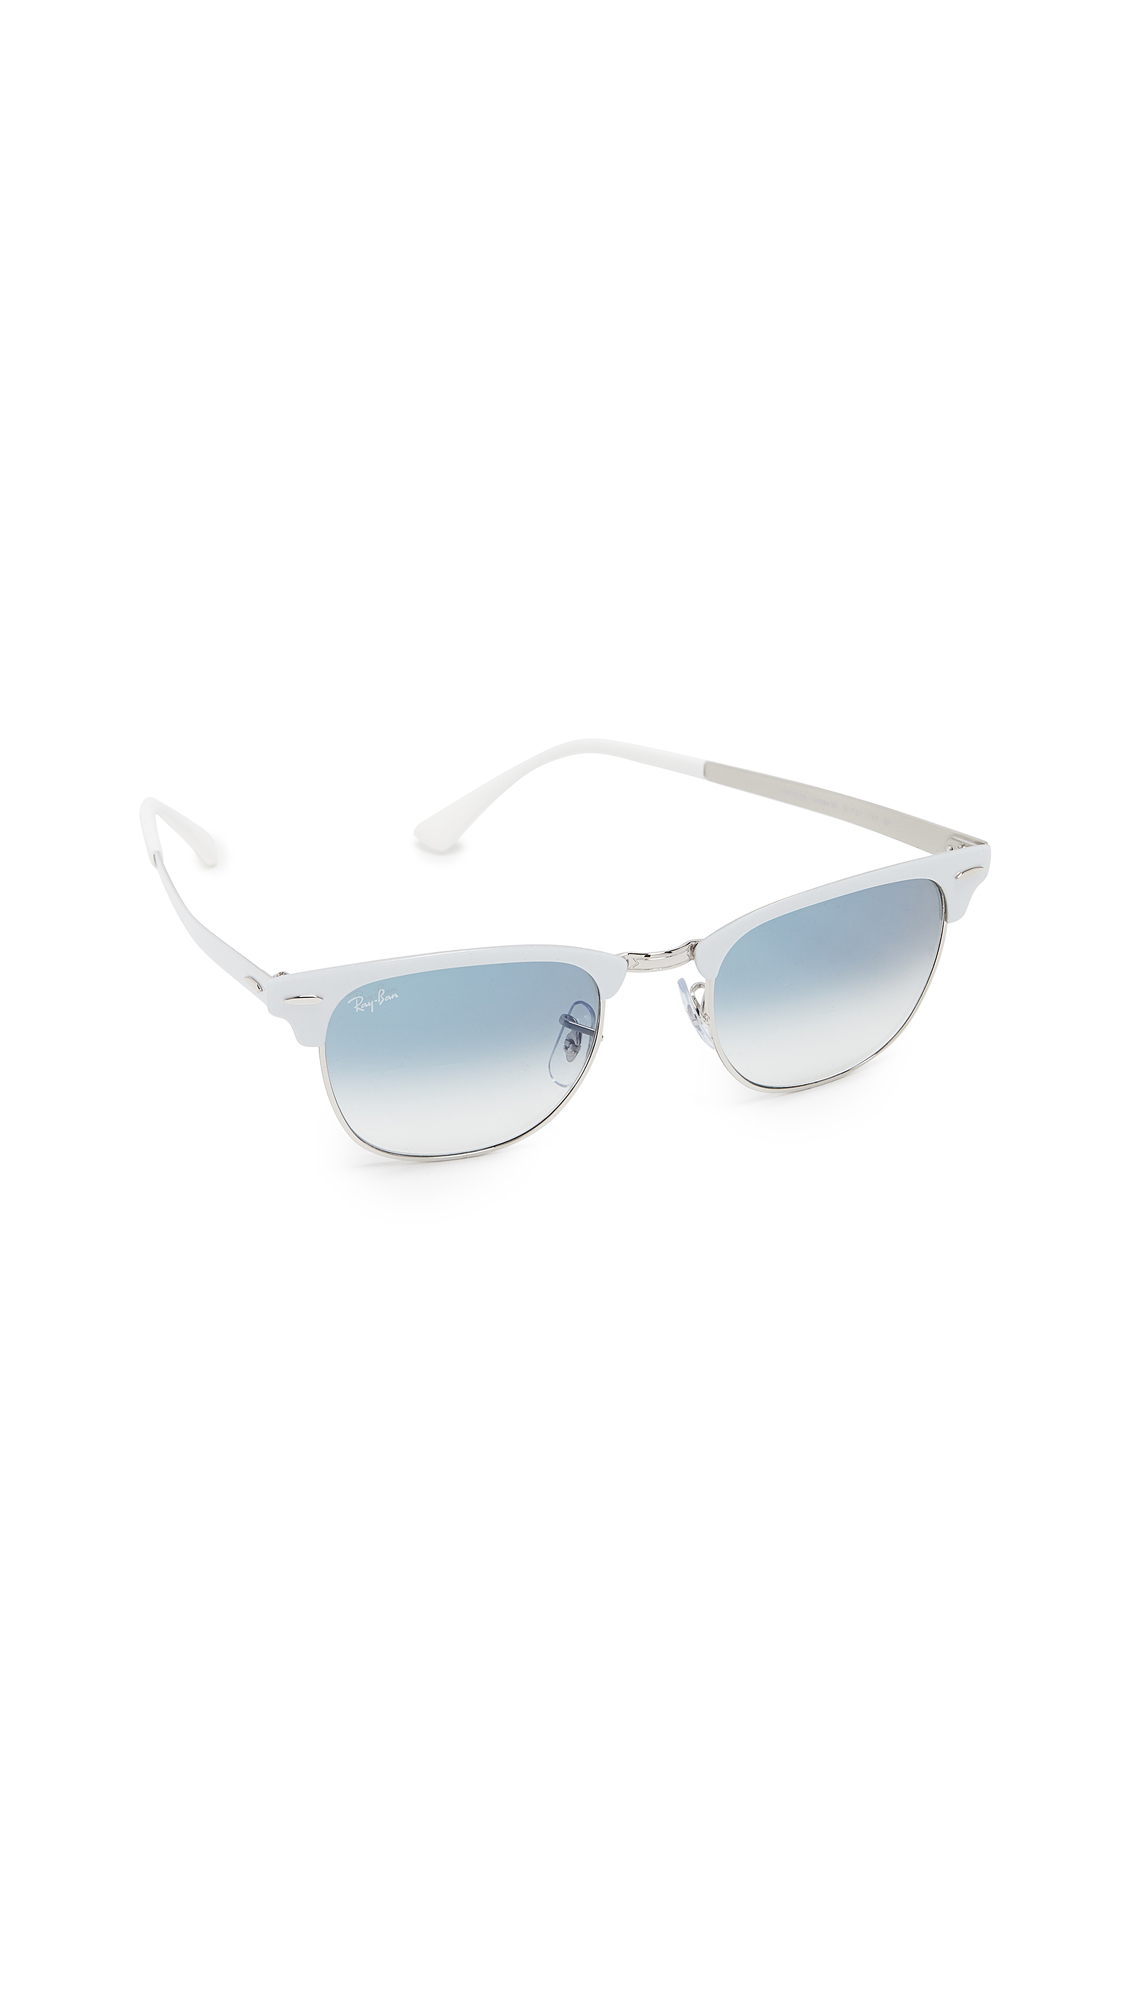 Ray-Ban Clubmaster Sunglasses In White/Blue